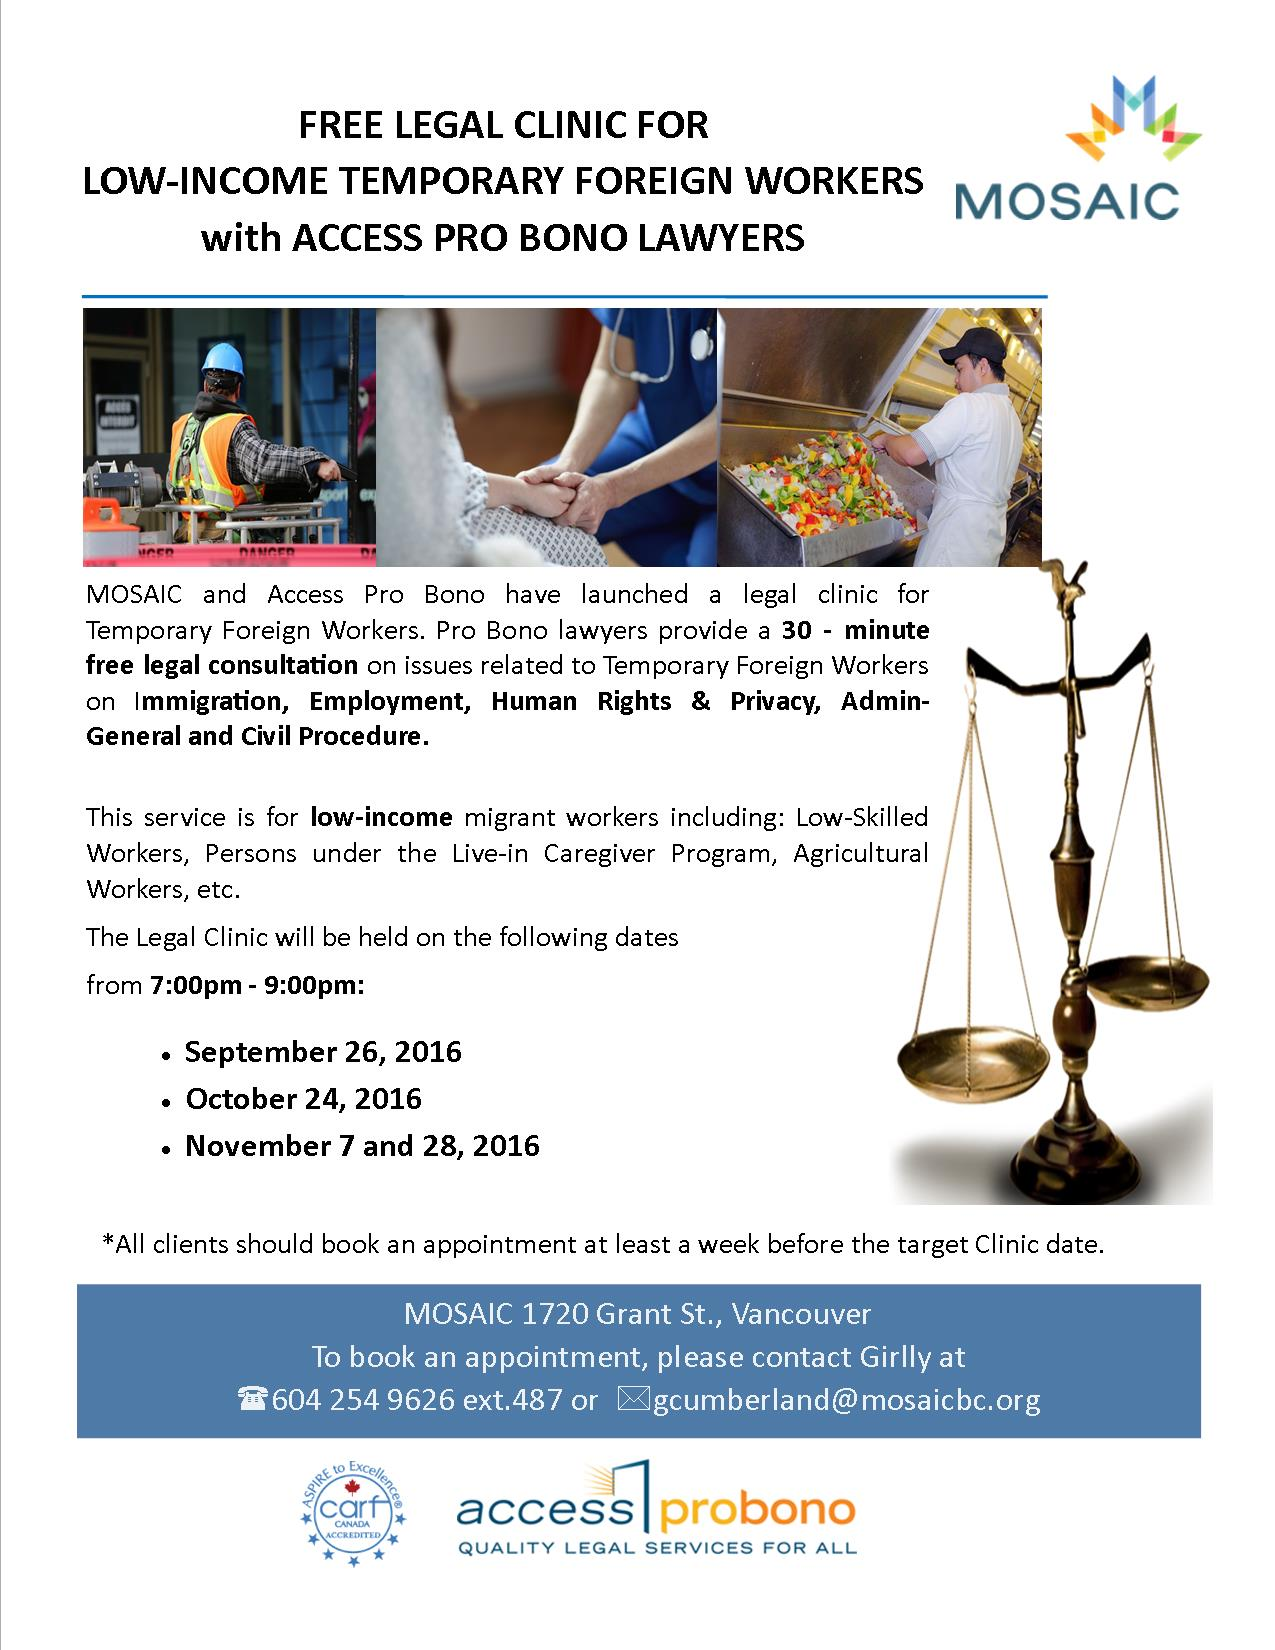 Free Legal Clinic for Low-Income Temporary Foreign Workers - MOSAIC